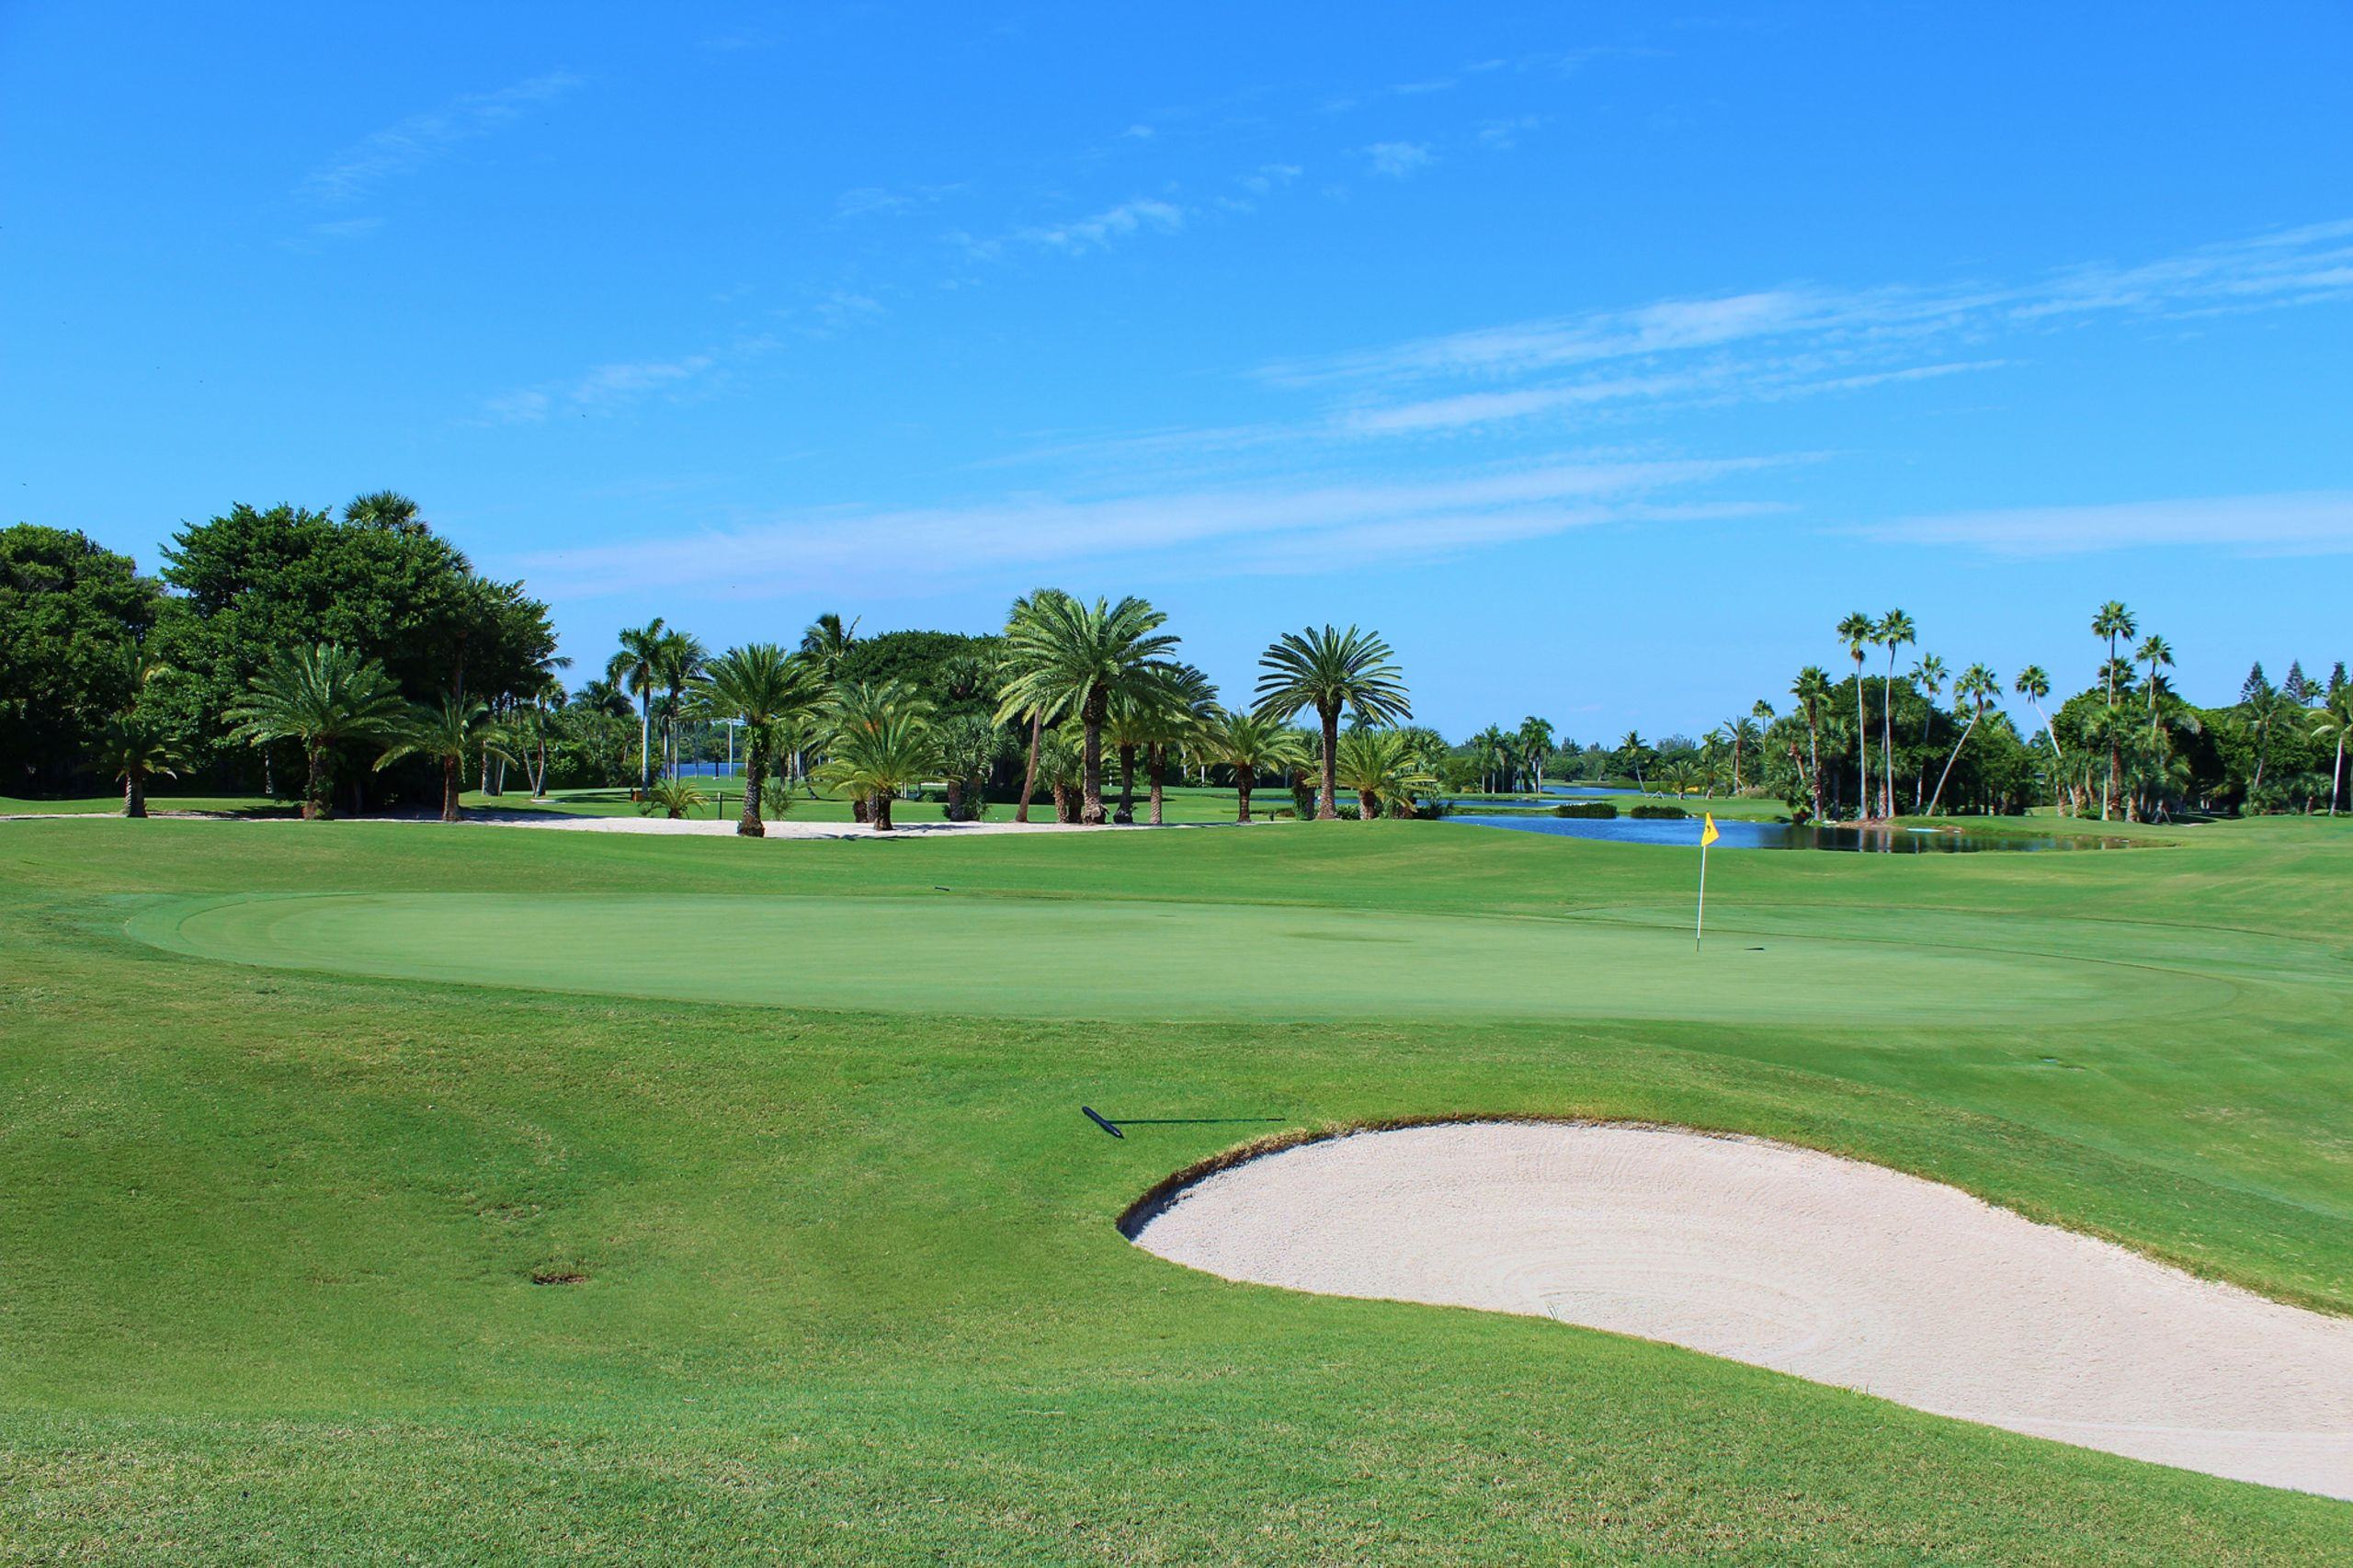 WATERFRONT GOLF COURSES